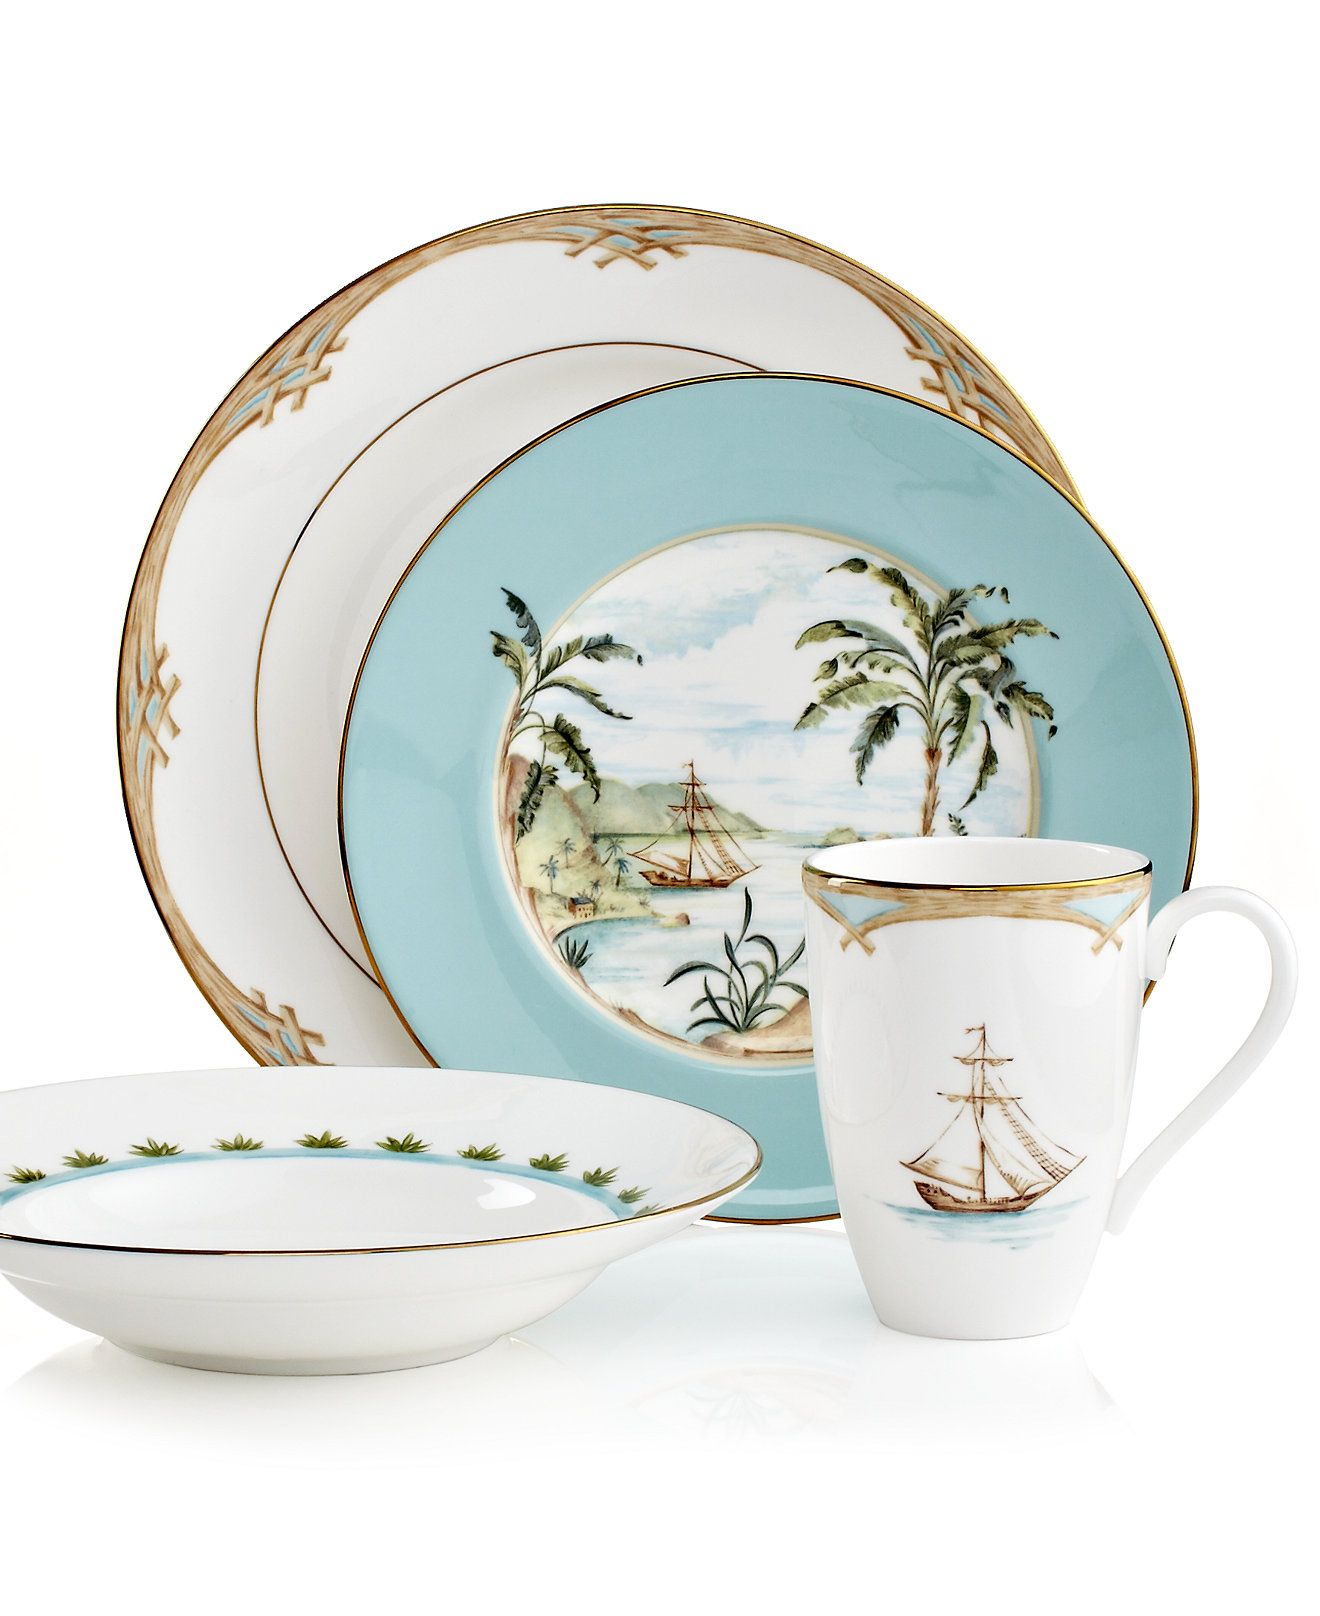 British Colonial Collection British Colonial Decor West Indies Decor British Colonial